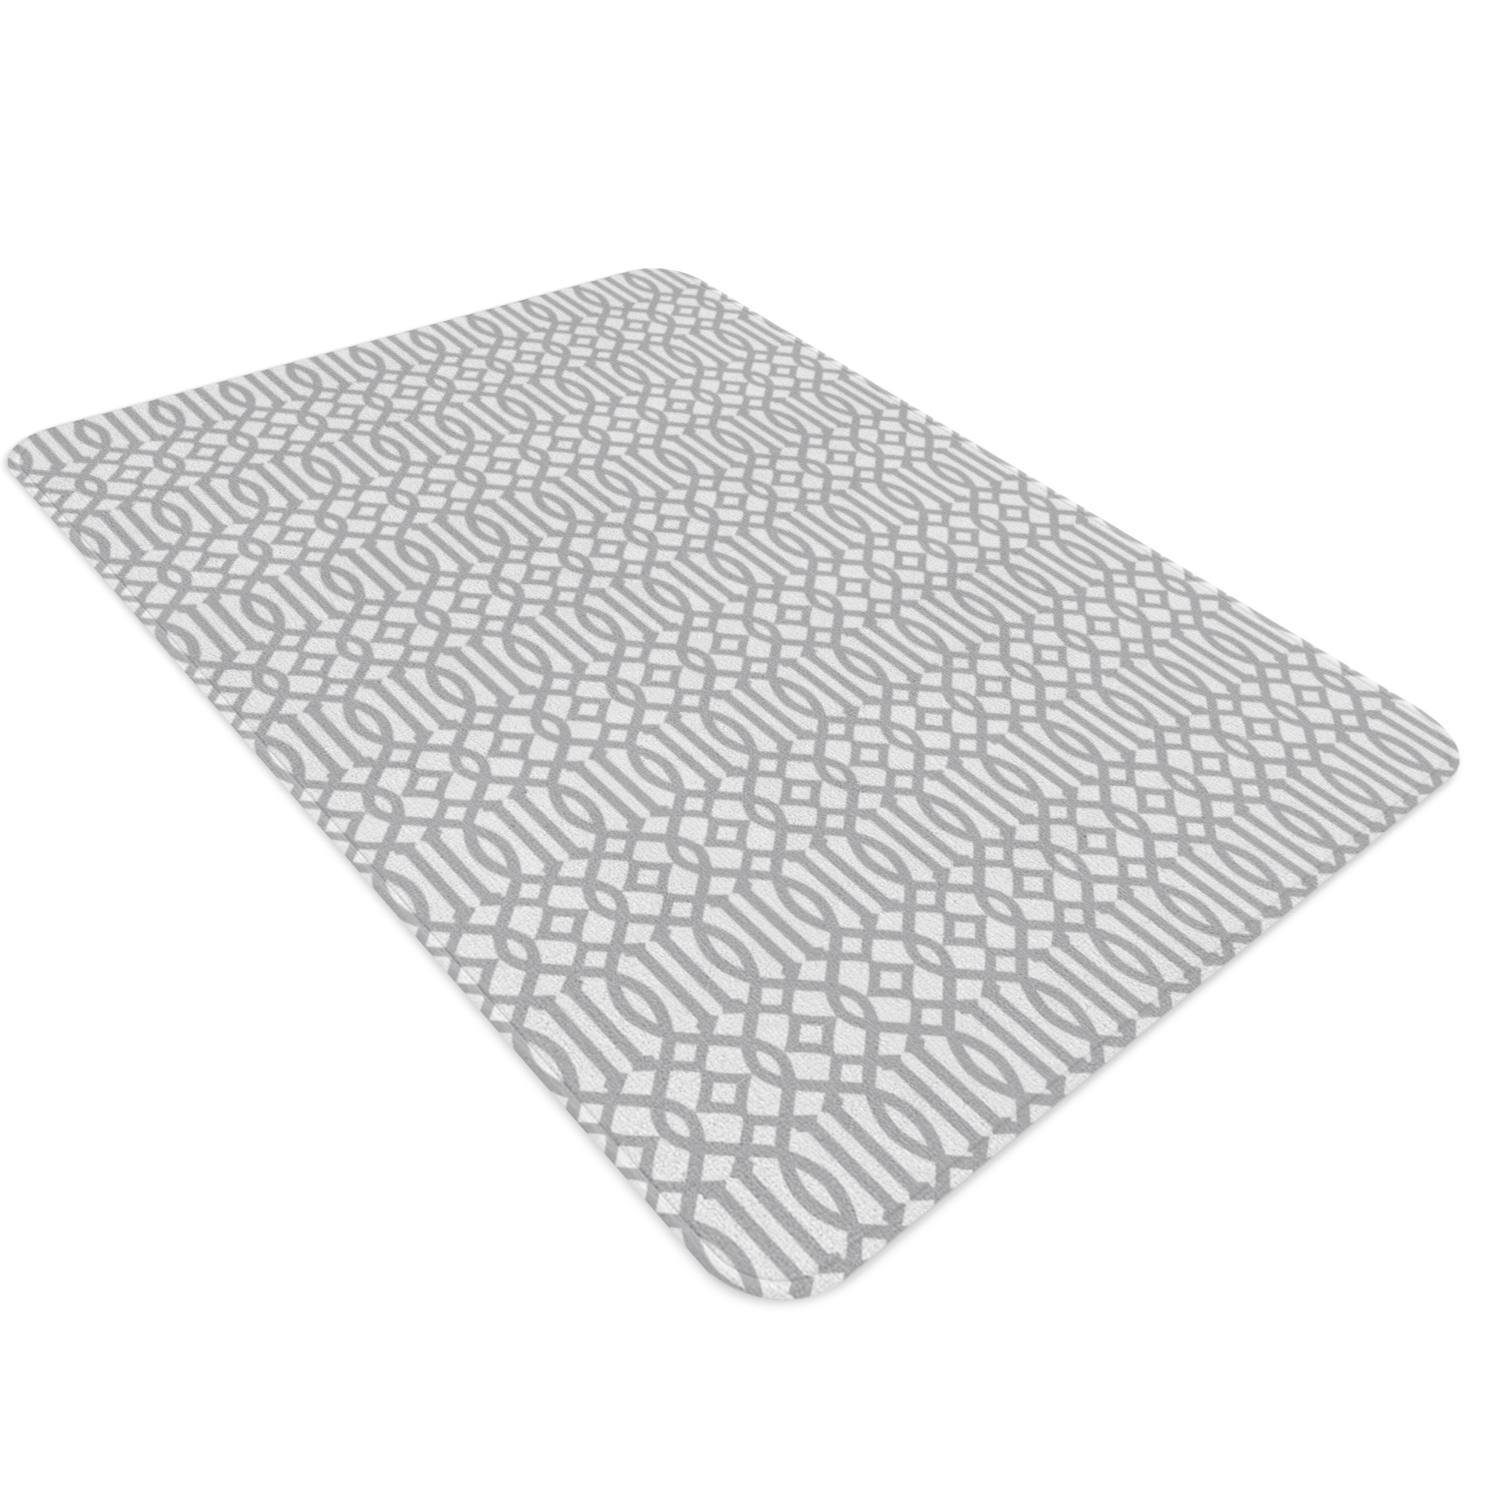 A geometric nursery rug with trellis pattern in gray and white. This monochrome abstract patterned rug is captivating and can easily be the prodigal piece of your nursery.